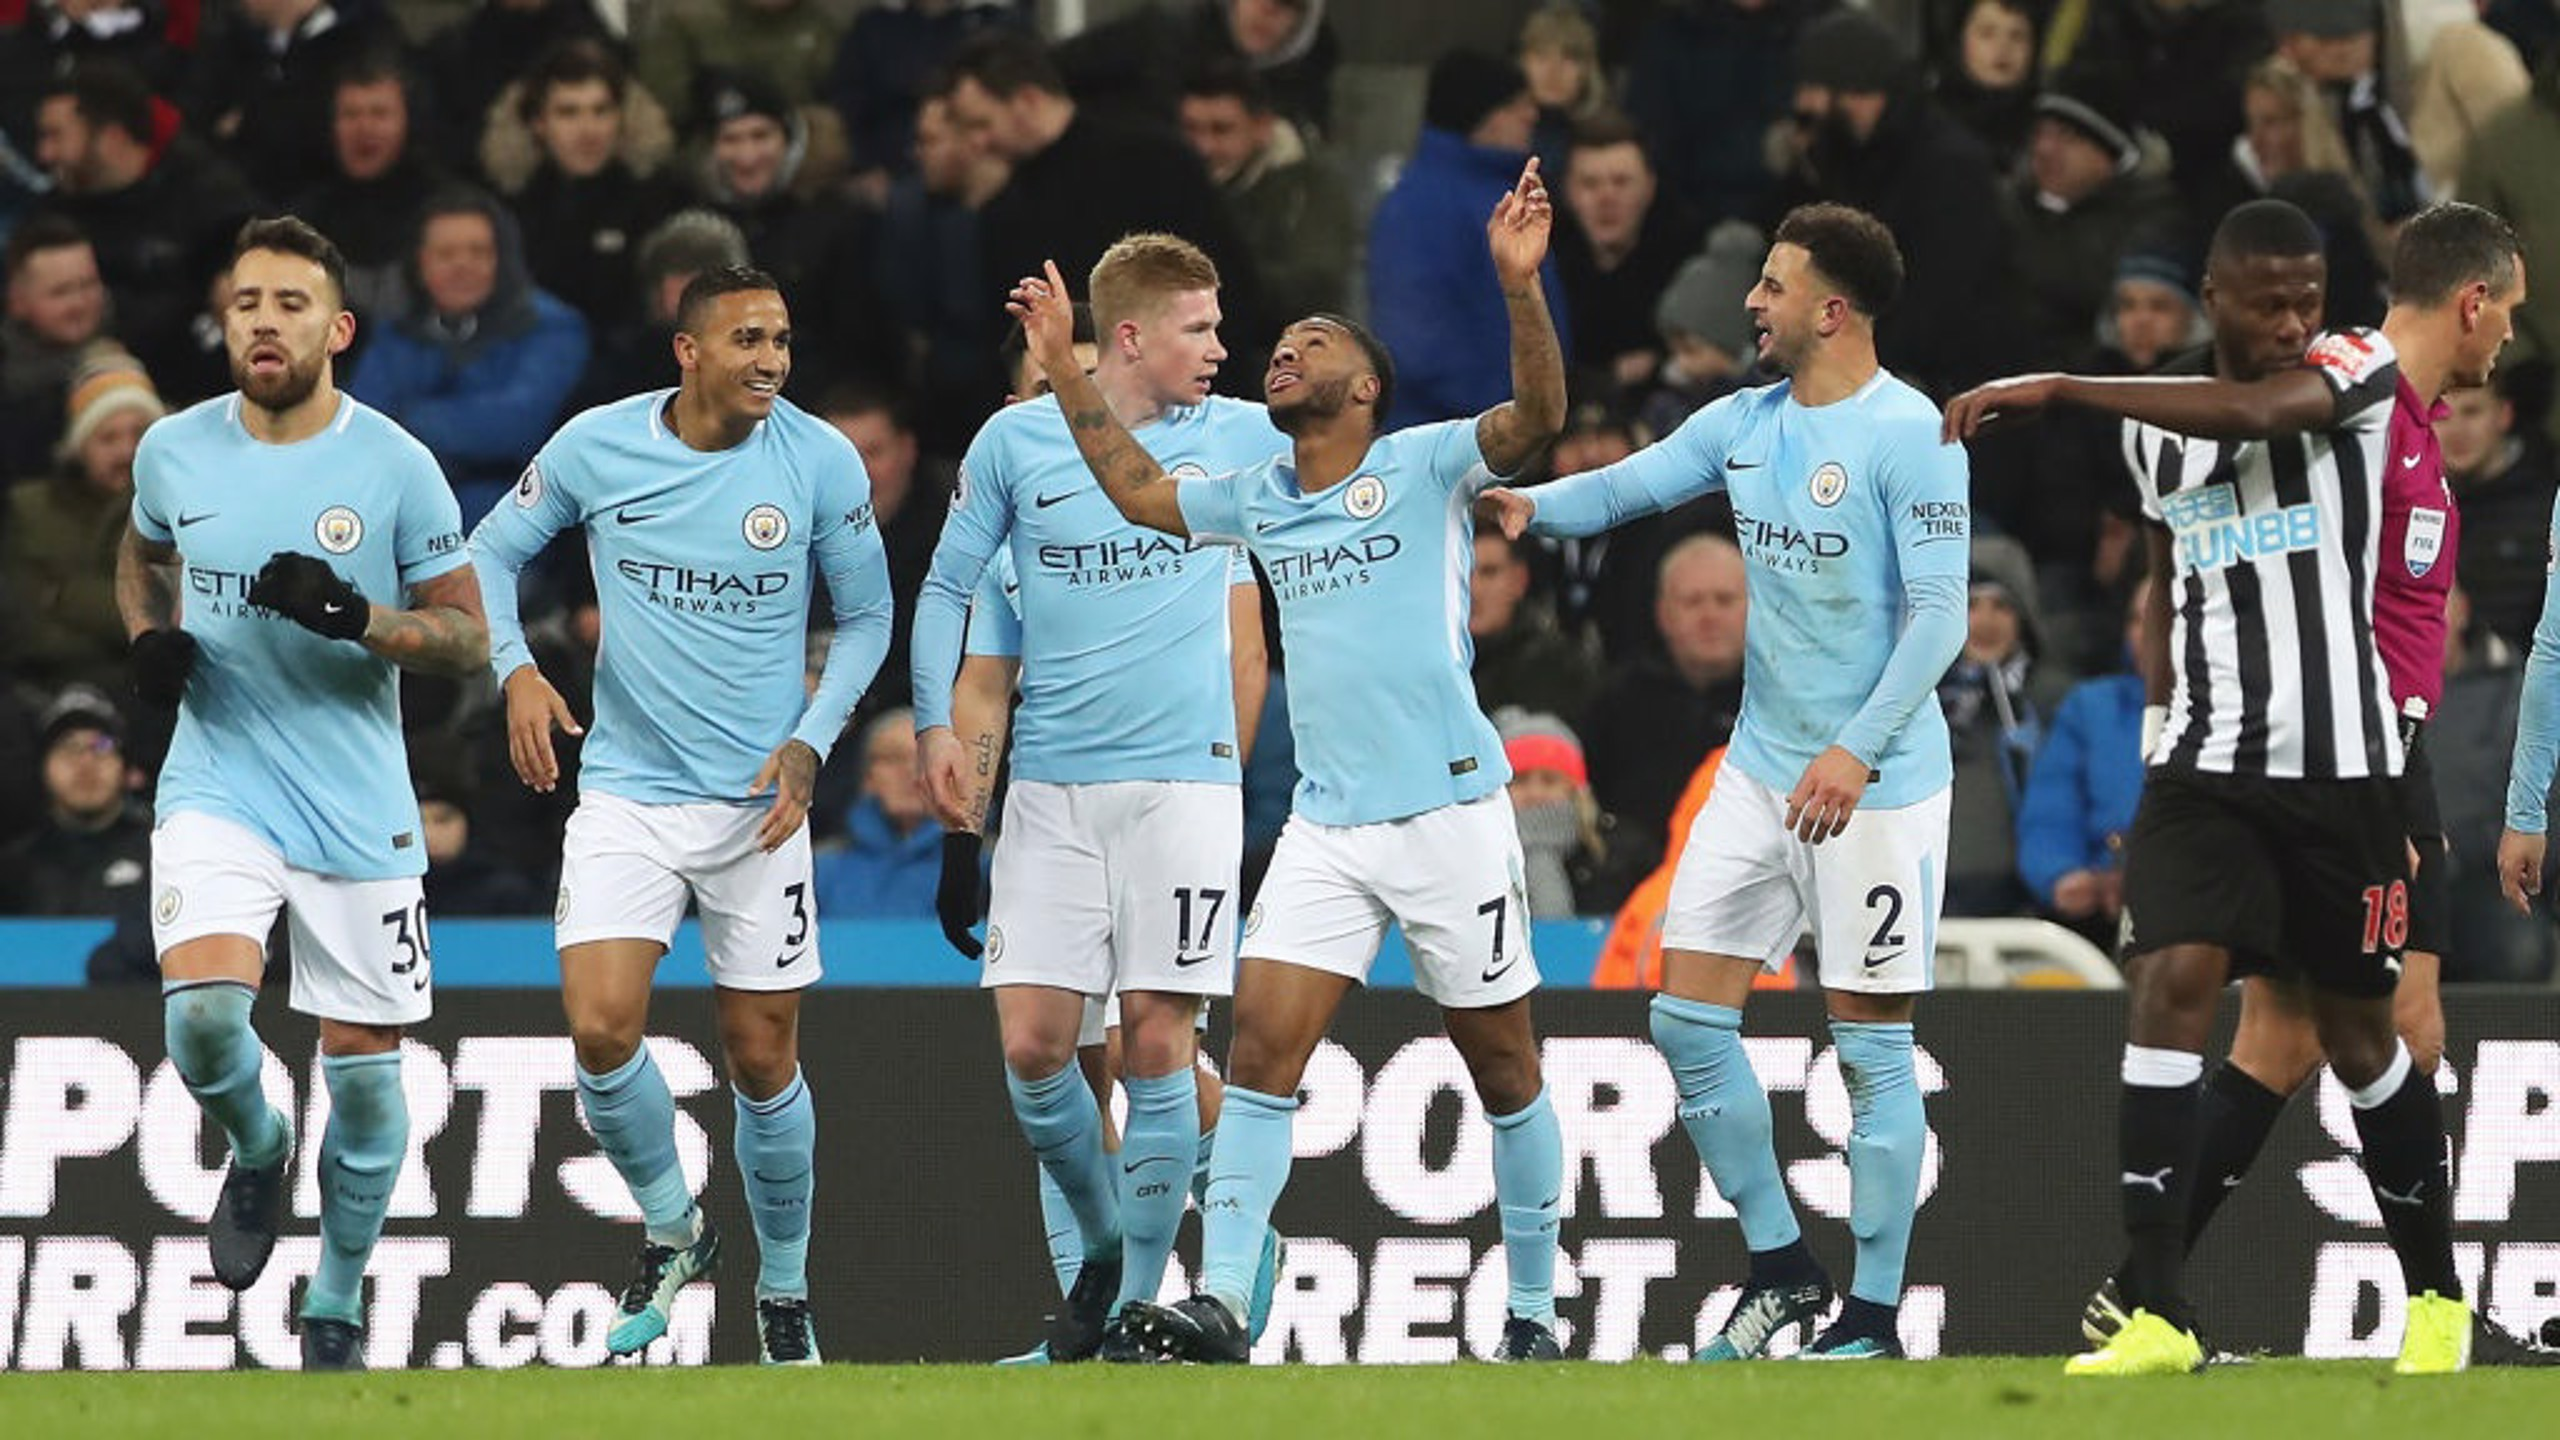 HE'S TOP OF THE LEAGUE: Raheem Sterling celebrates his 17th goal in all competitions this season.